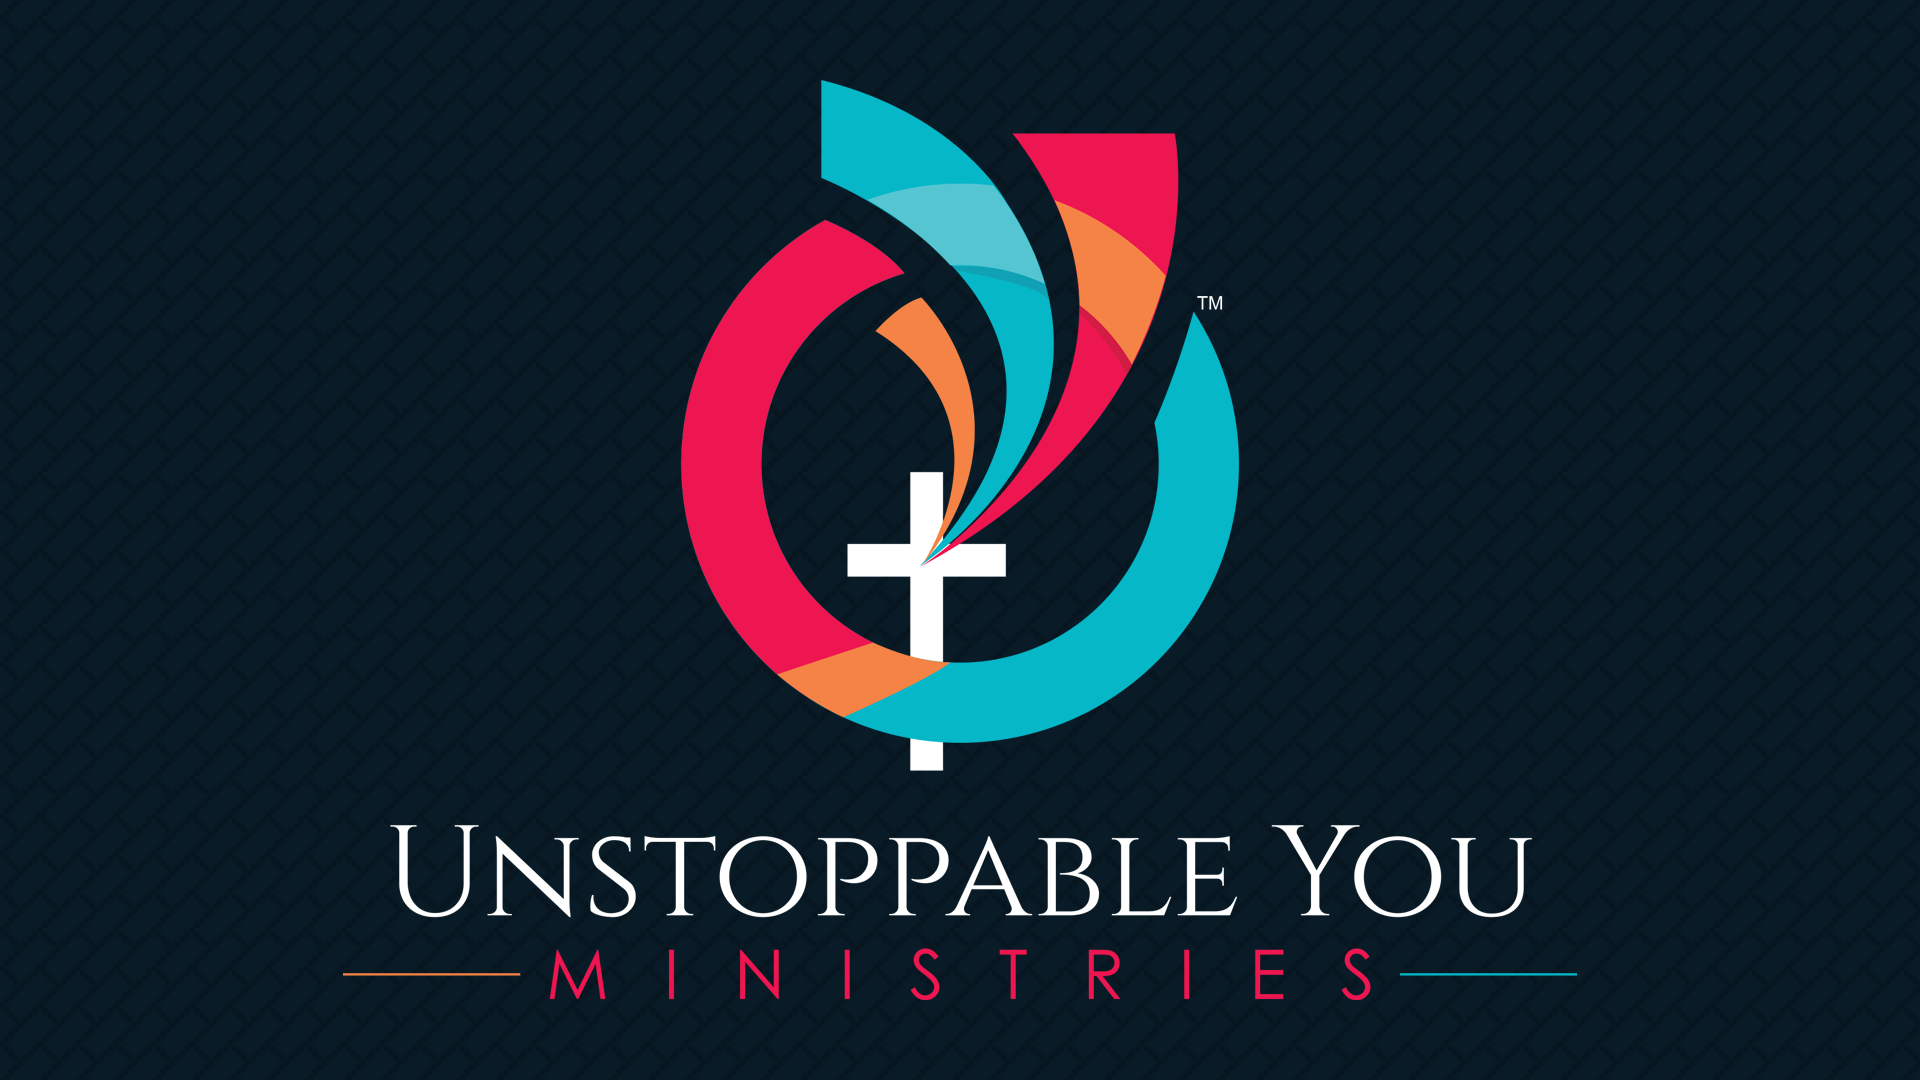 Unstoppable You Ministries